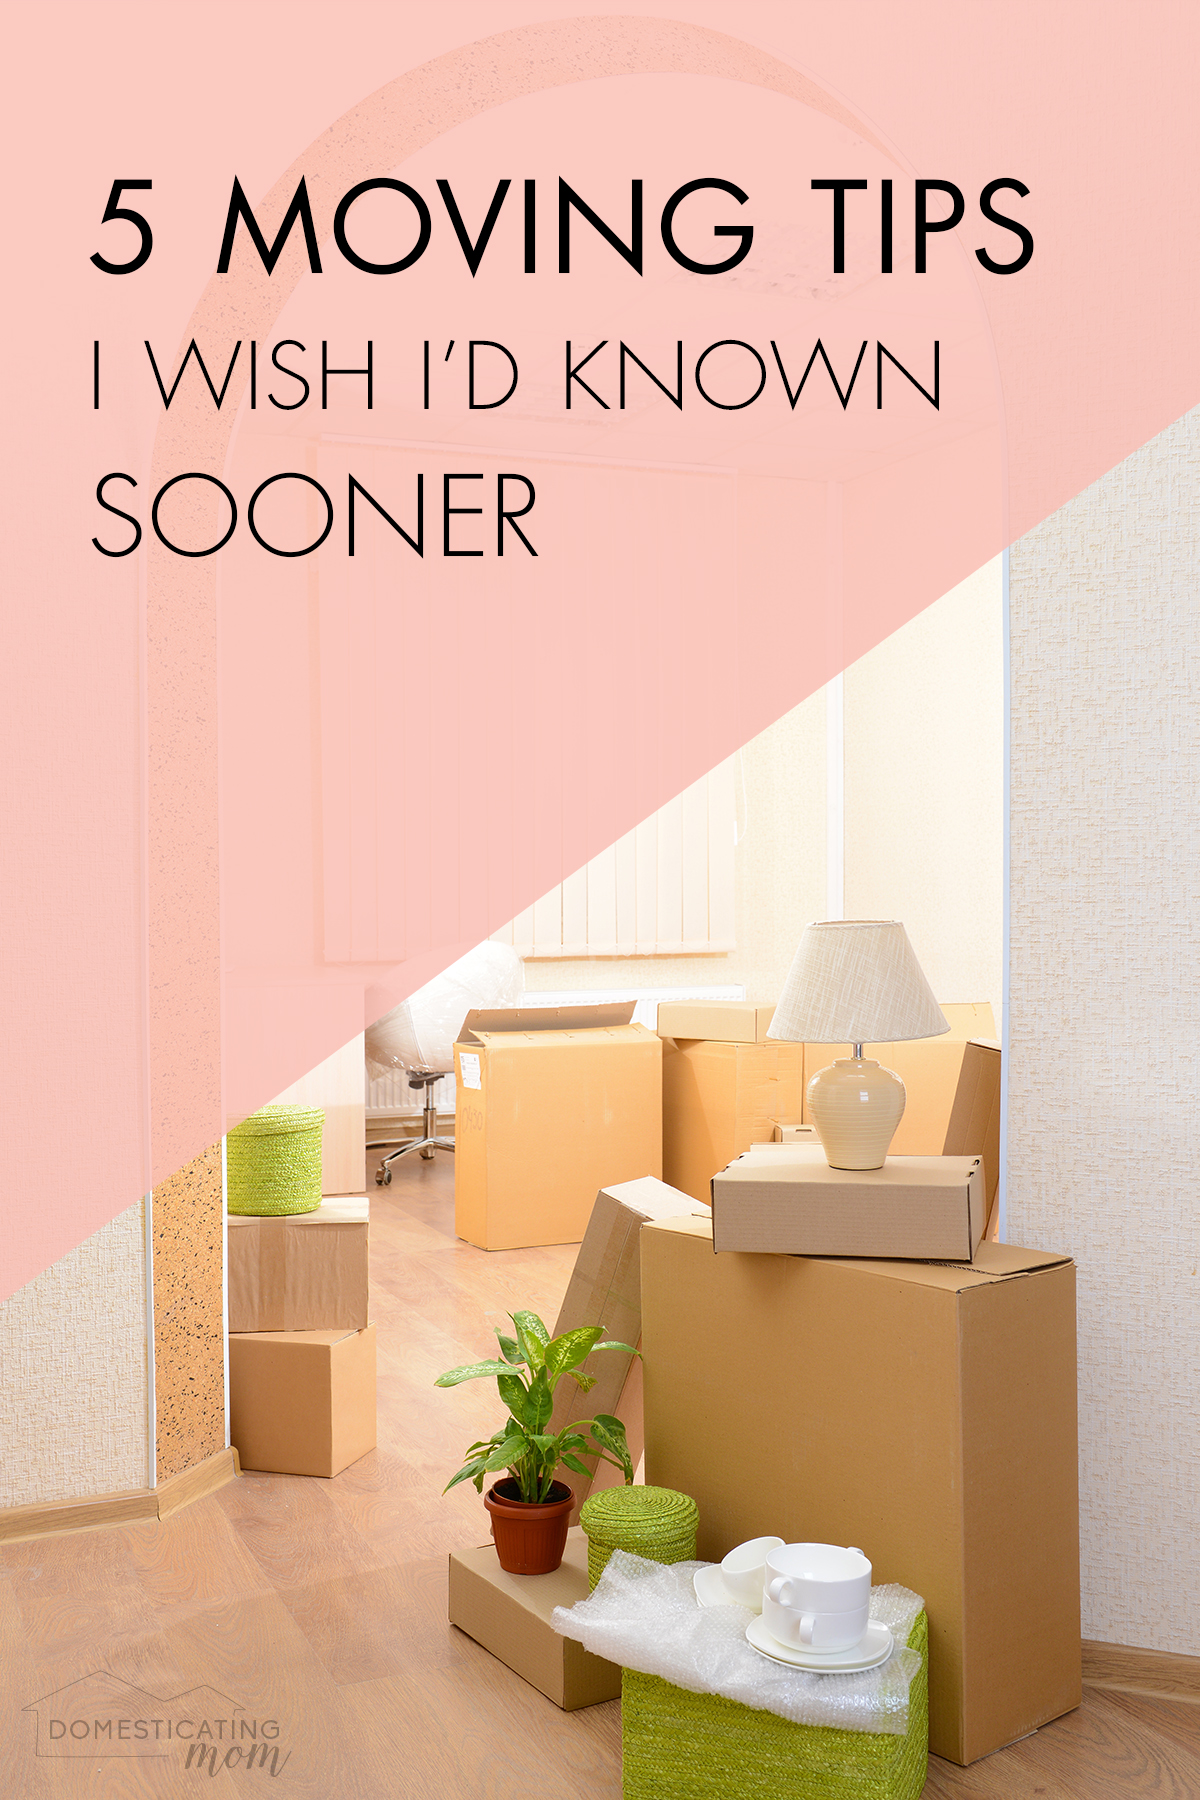 5 Moving Tips I Wish I Had Known Sooner